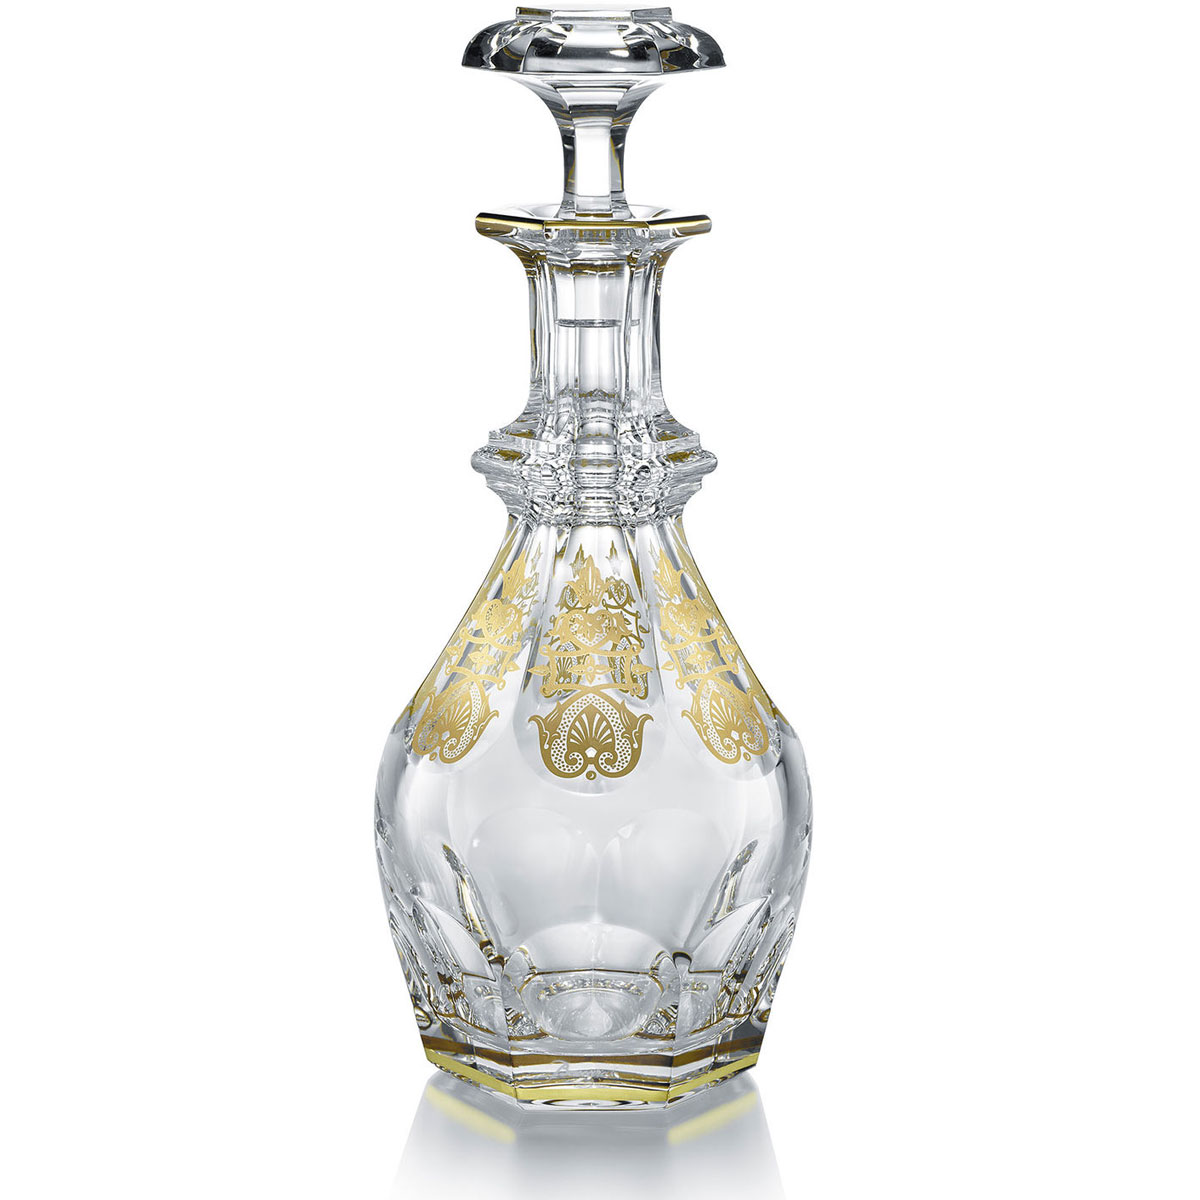 Baccarat Crystal, Harcourt Empire Large Decanter